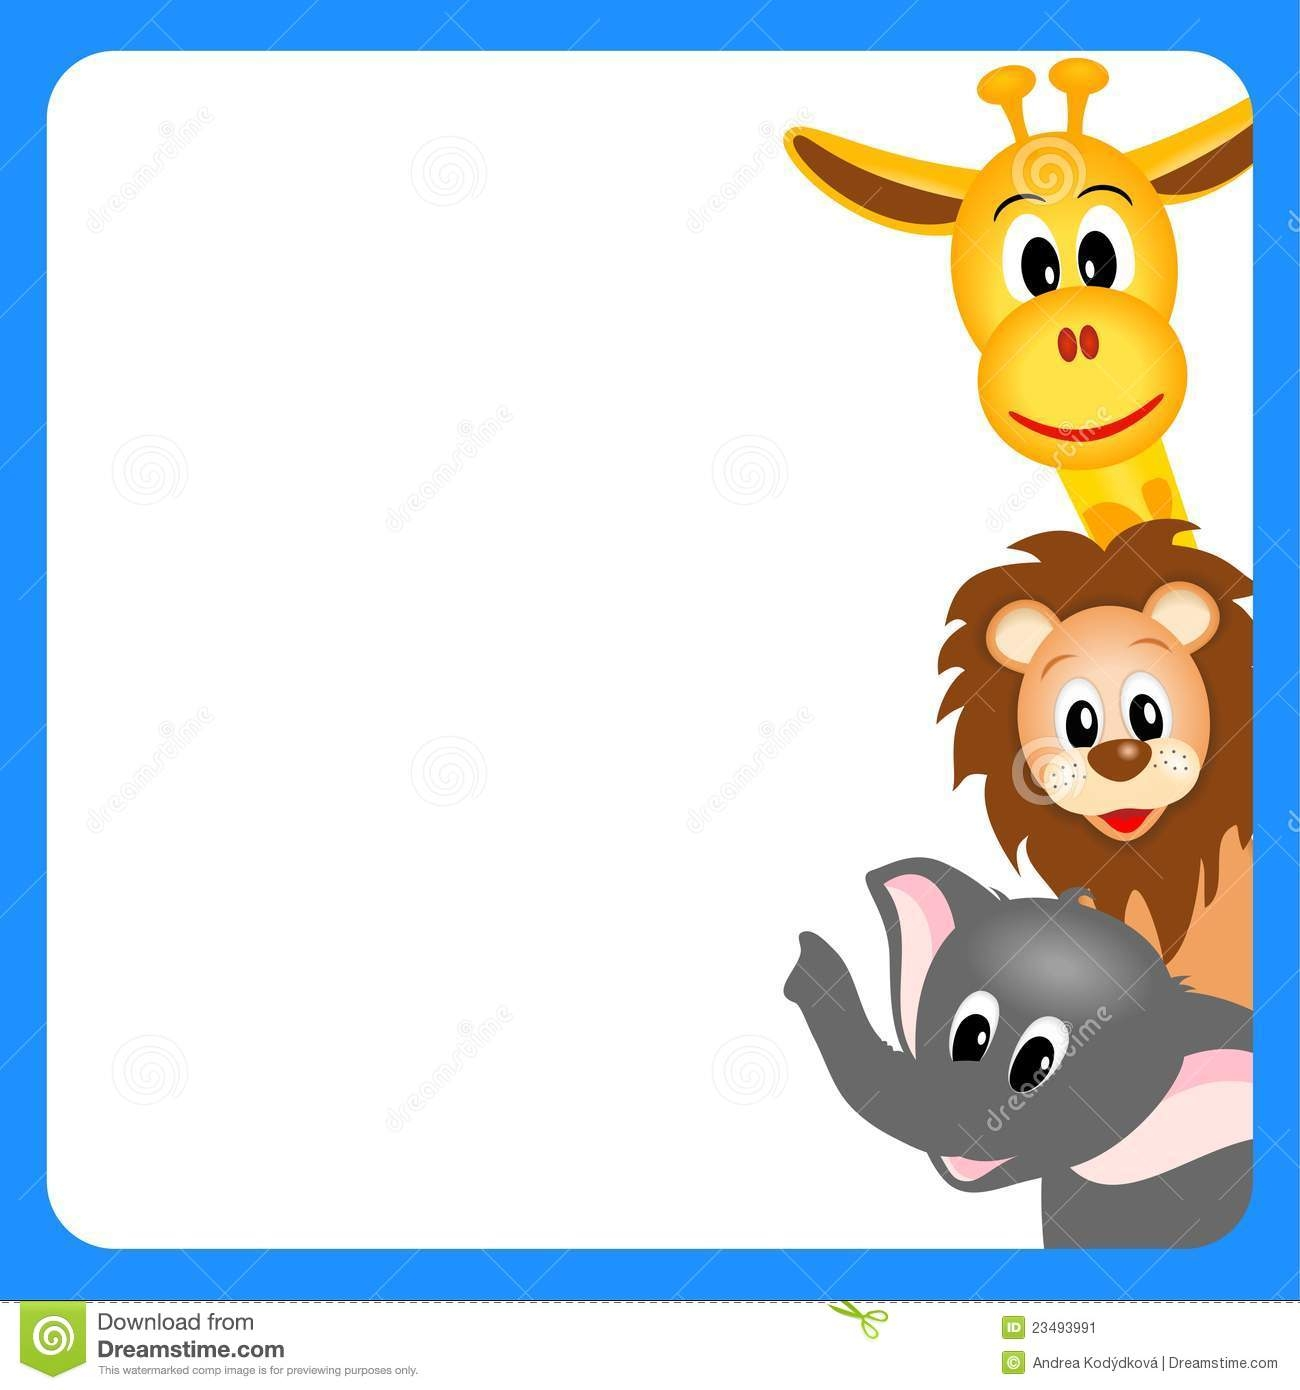 vector freeuse library Free animal cliparts download. Zoo border clipart